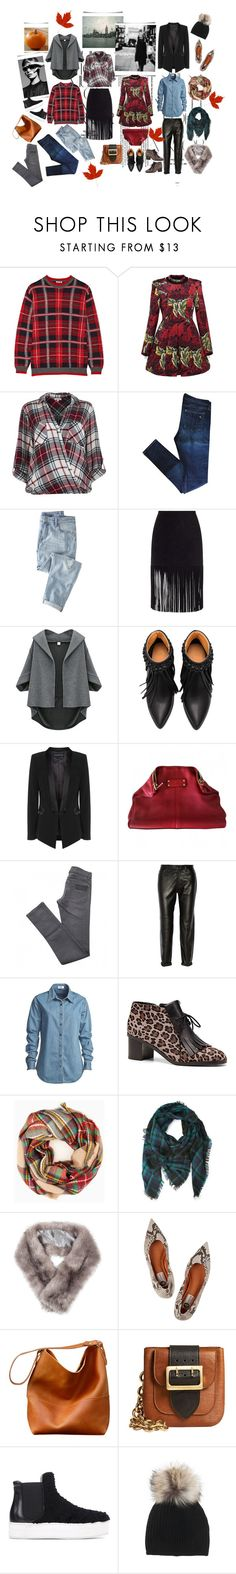 """FALL"" by stephanie-nina ❤ liked on Polyvore featuring Rika, Miu Miu, Marc by Marc Jacobs, River Island, rag & bone, Wrap, ThePerfext, Alexander McQueen, April 77 and J Brand"